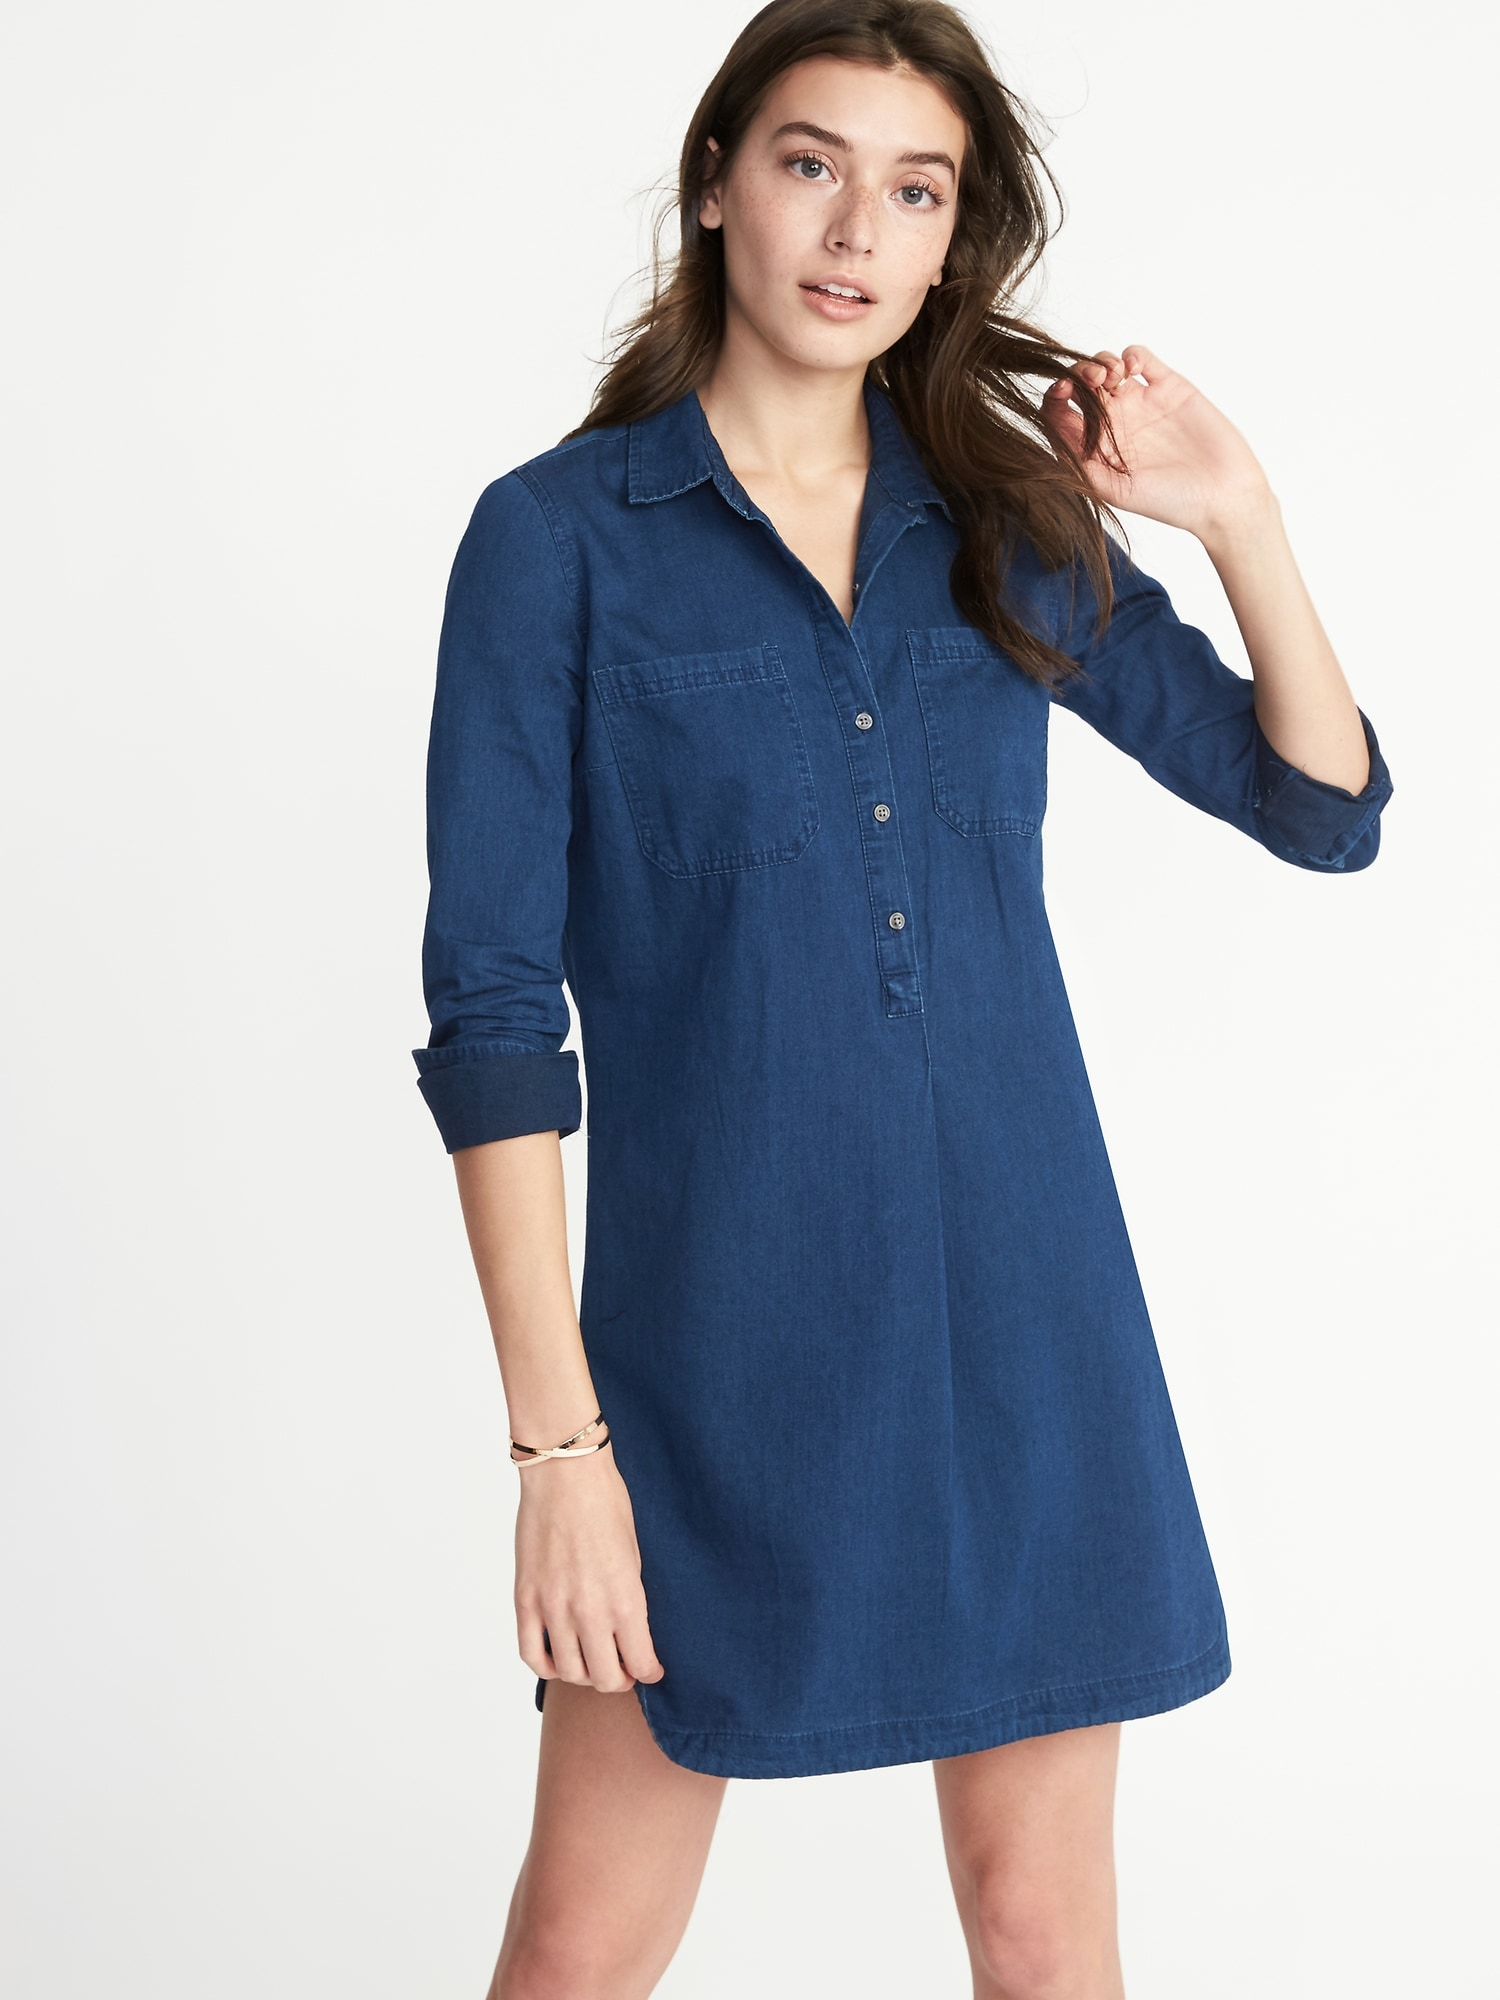 To acquire Shirt dress for women picture trends